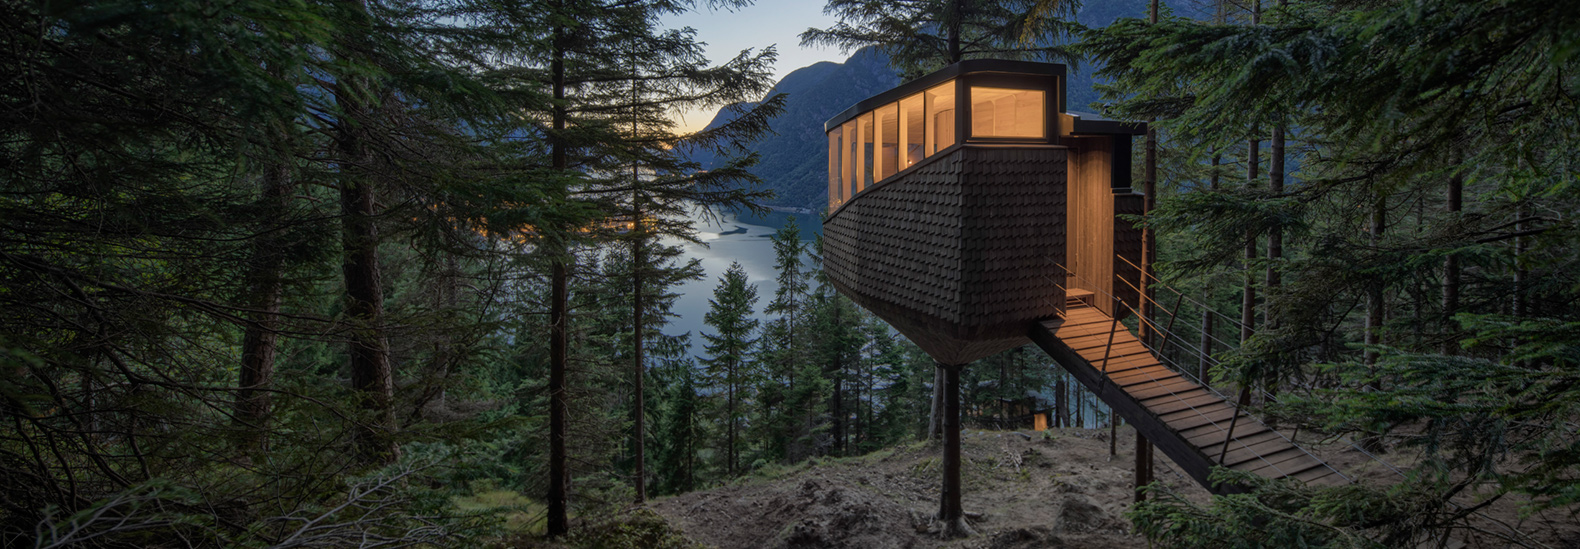 Suspended treehouses provide epic views of a fjord in Norway